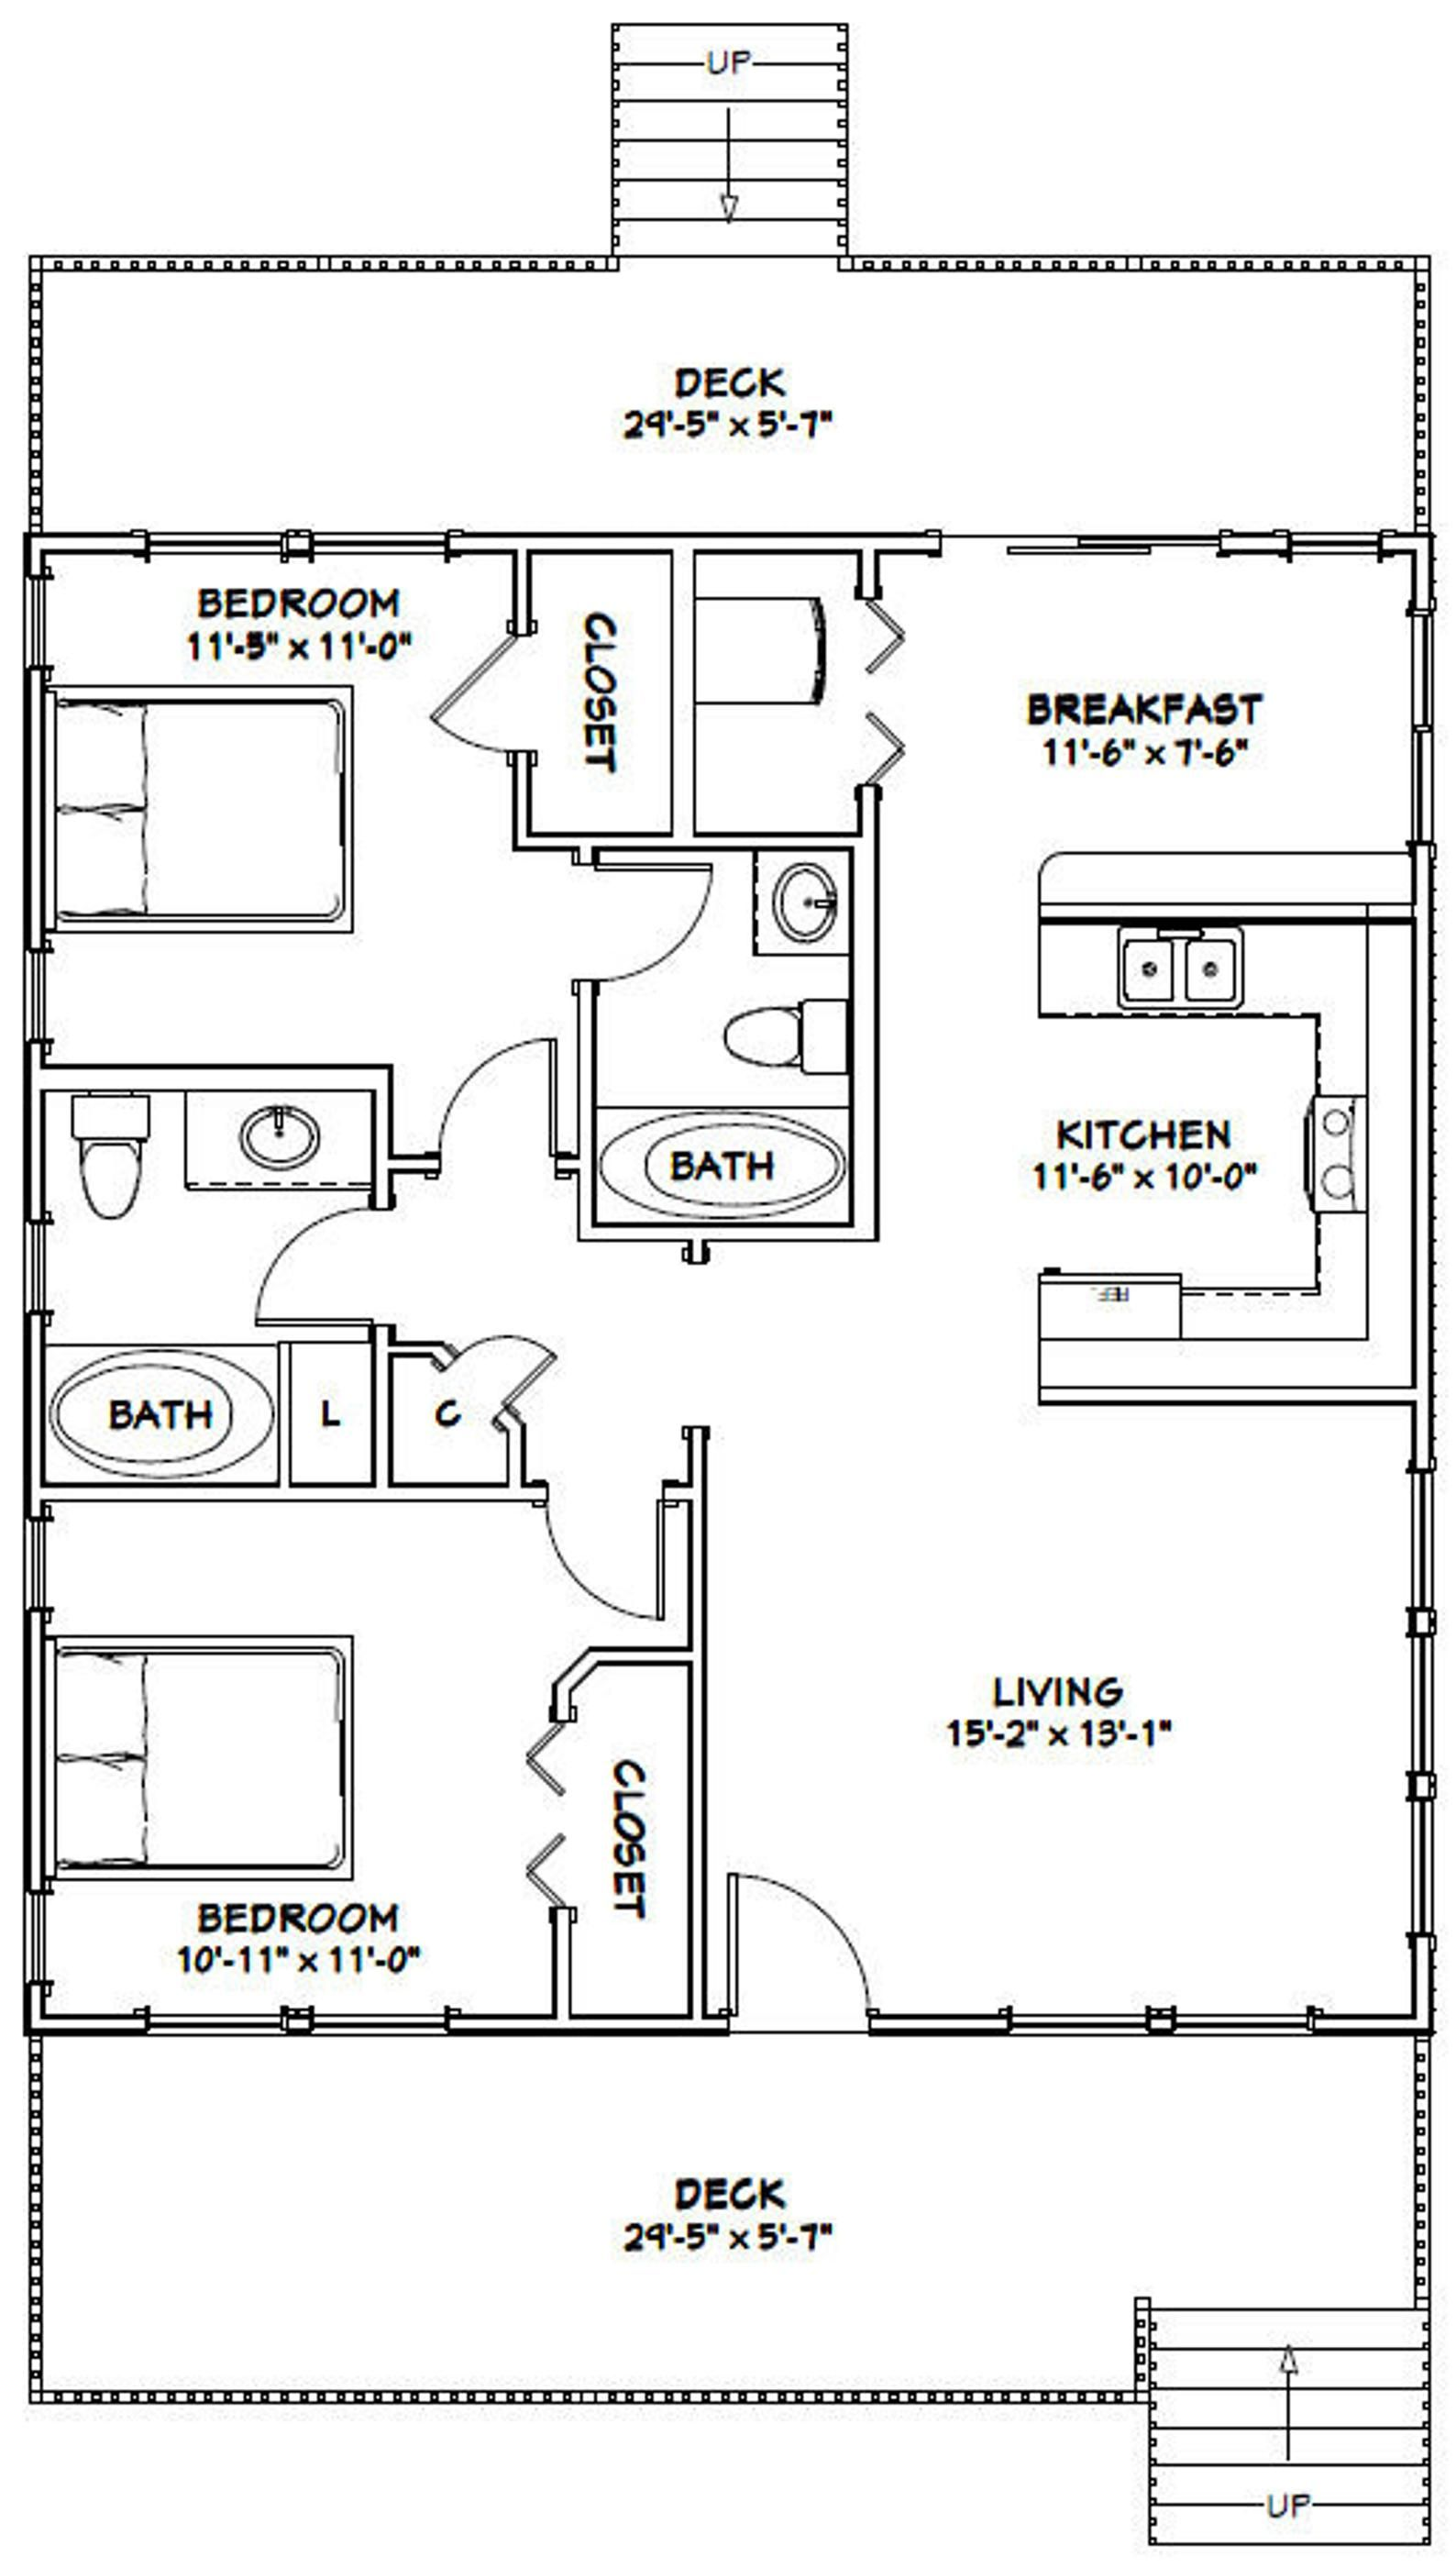 30x32 House 2 Bedroom 2 Bath 960 Sq Ft Pdf Floor Plan Etsy In 2020 Small House Floor Plans 1200 Sq Ft House Cabin Floor Plans